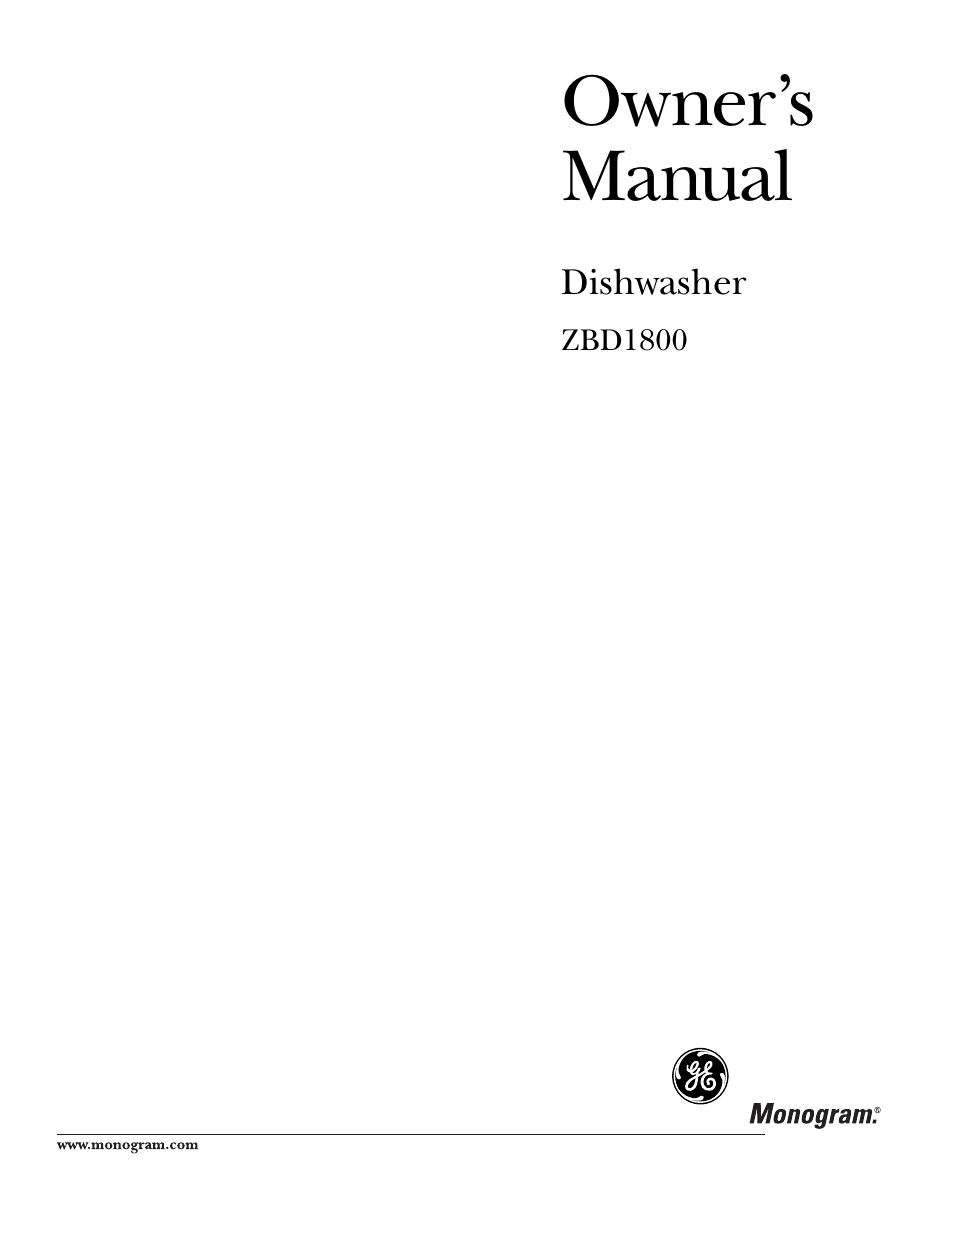 Owners manual for ge dishwasher array ge monogram dishwasher owners manual open source user manual u2022 rh curadata co fandeluxe Image collections